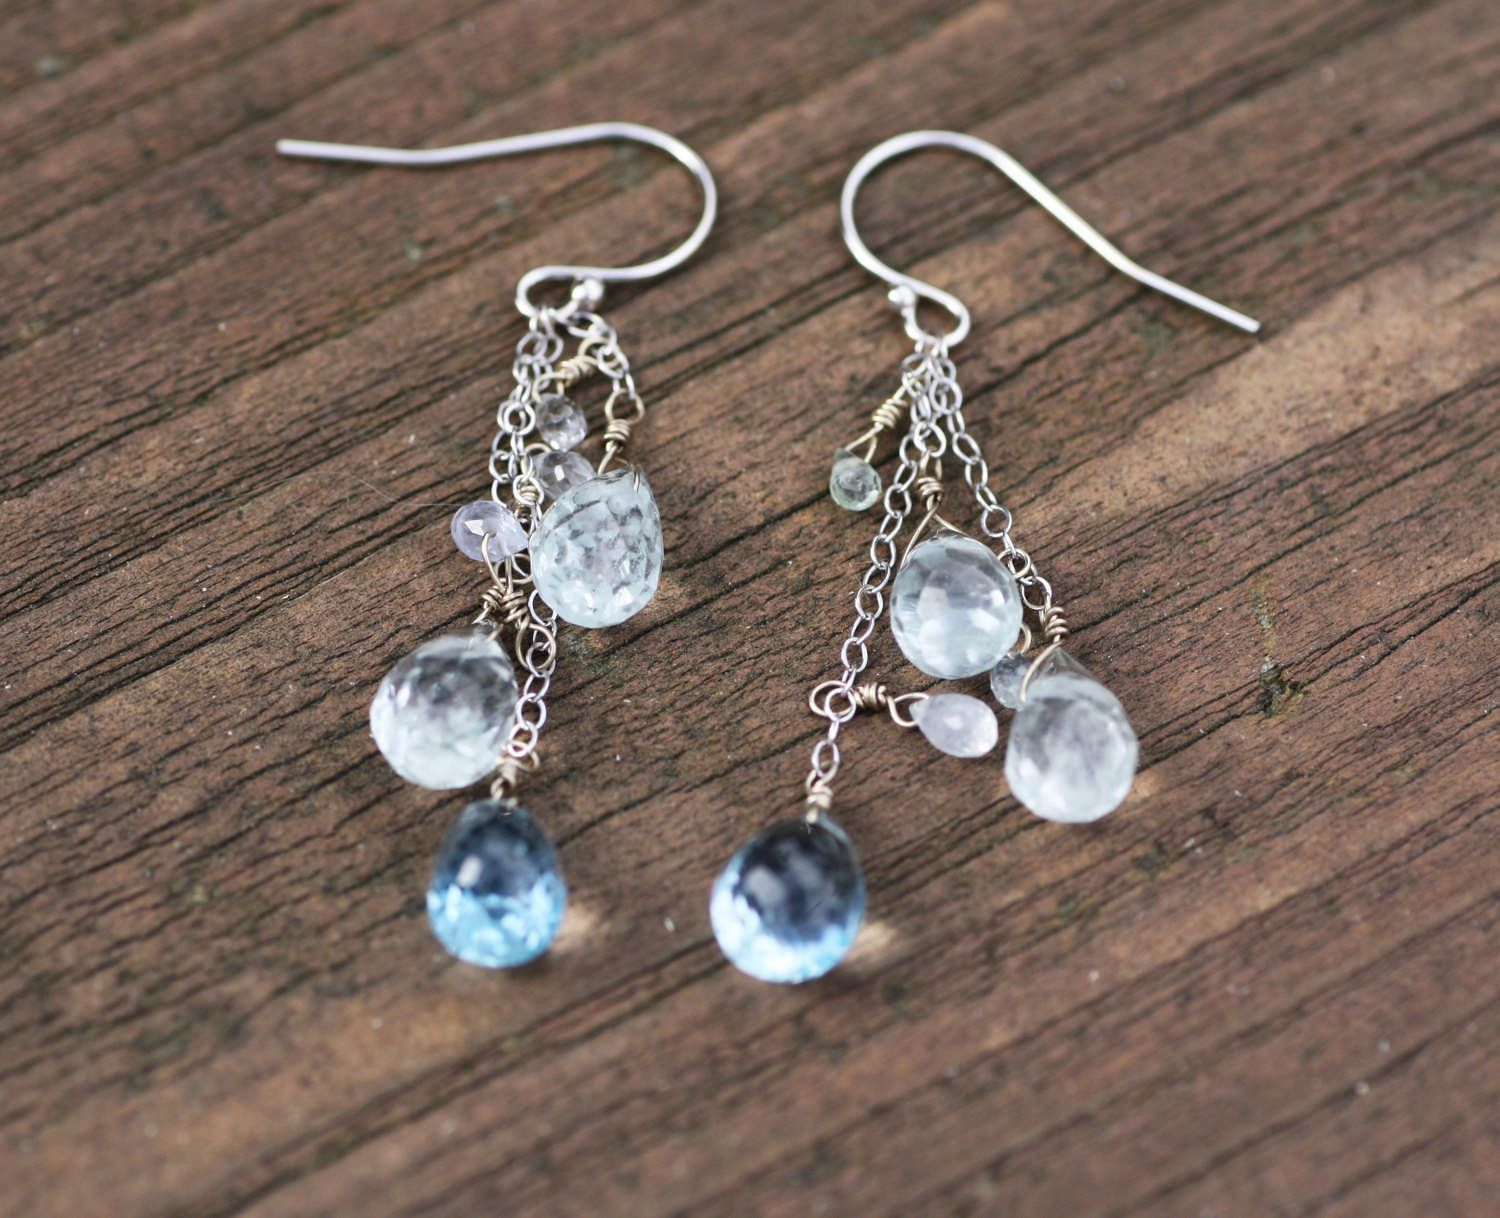 Natural Aquamarine And Blue Topaz Earrings In Solid 14k White Gold 4th 19th Anniversary Healing Gems From Canada March Birthstone